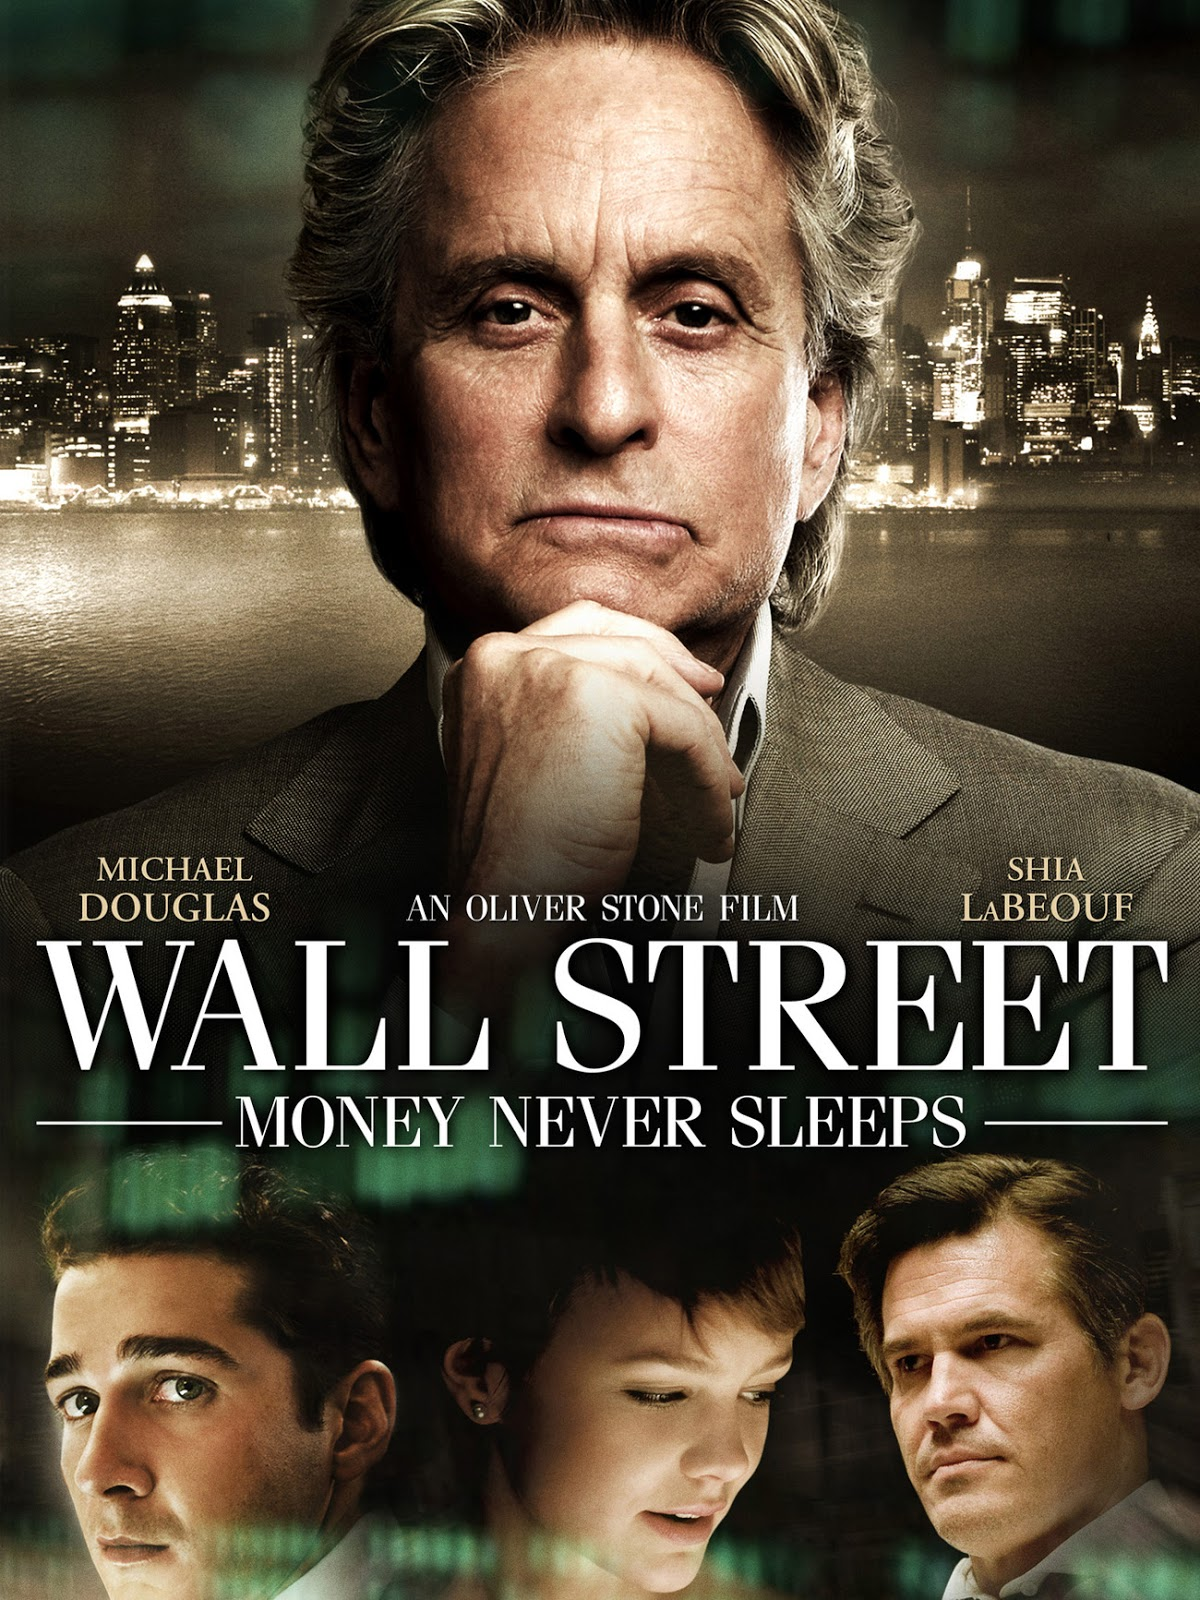 Wall Street: Money Never Sleeps - Wikipedia